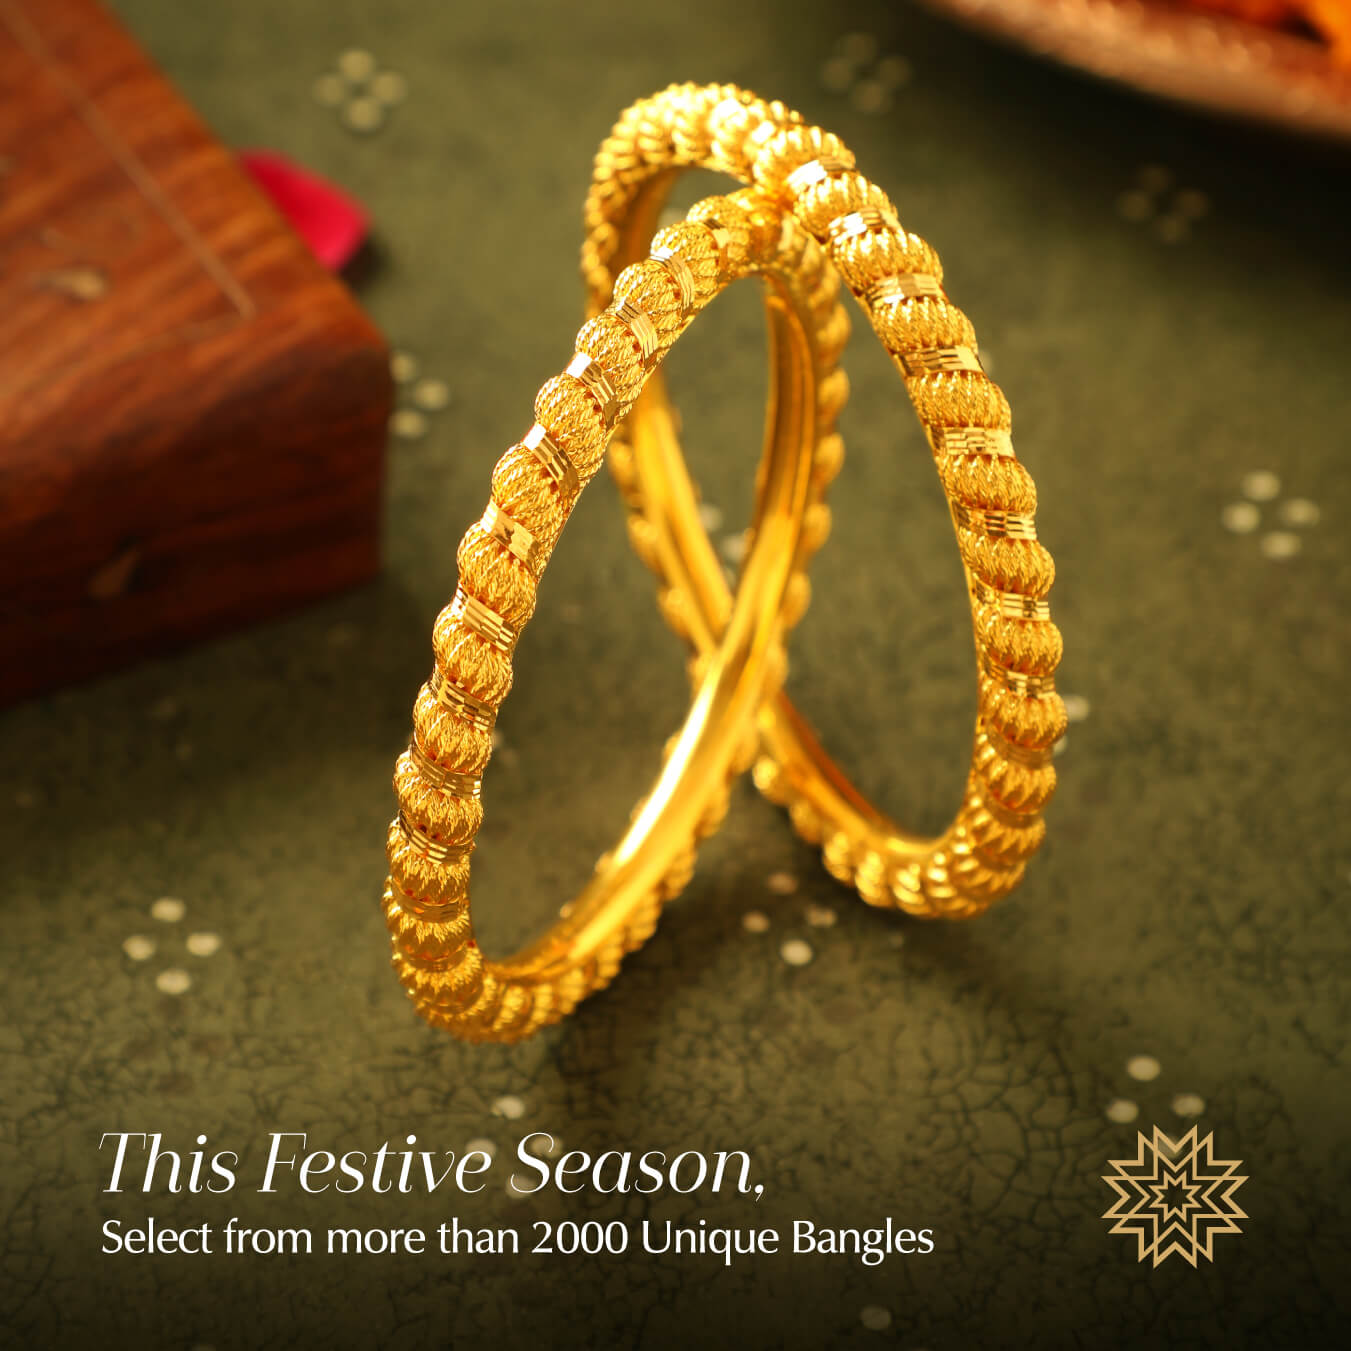 A bracelet lover, she wondered what would match her Bhai Dooj ethnic look; like the perfect savior, Bhai came to her rescue. Enclosed in a box red came his gift for little behena; a pair of dazzling gold bangles, the perfect match with her lehenga.